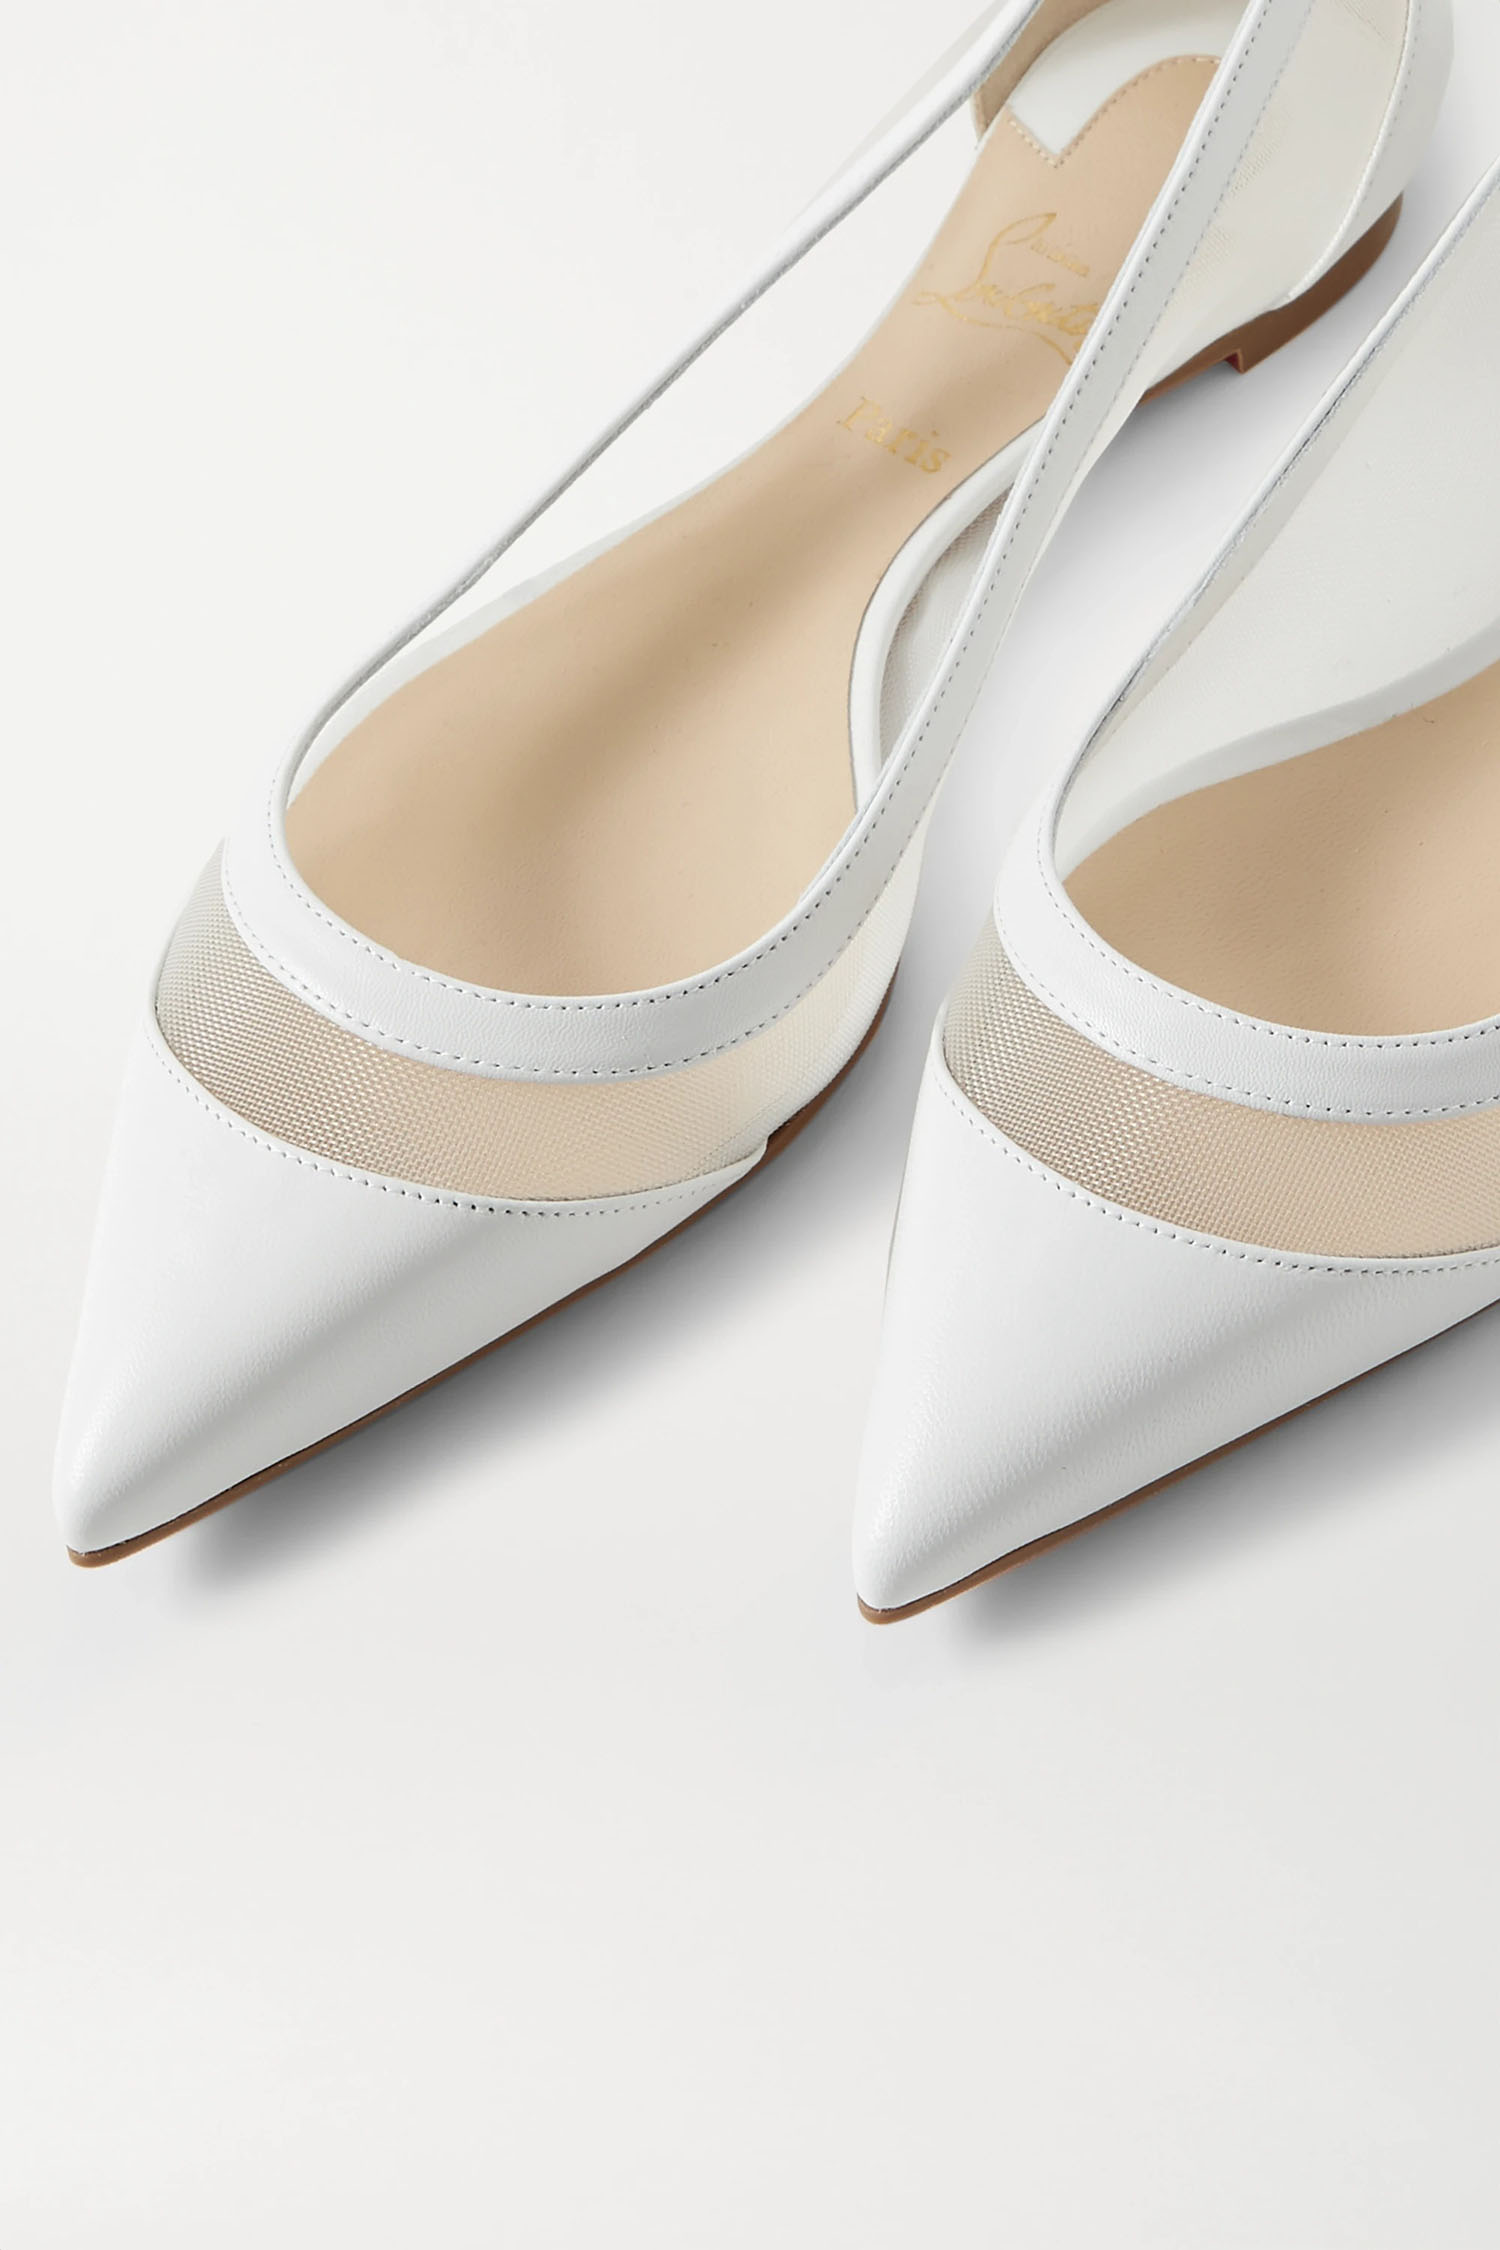 white leather and mesh point toe Christian Louboutin wedding flat shoes from NET-A-PORTER